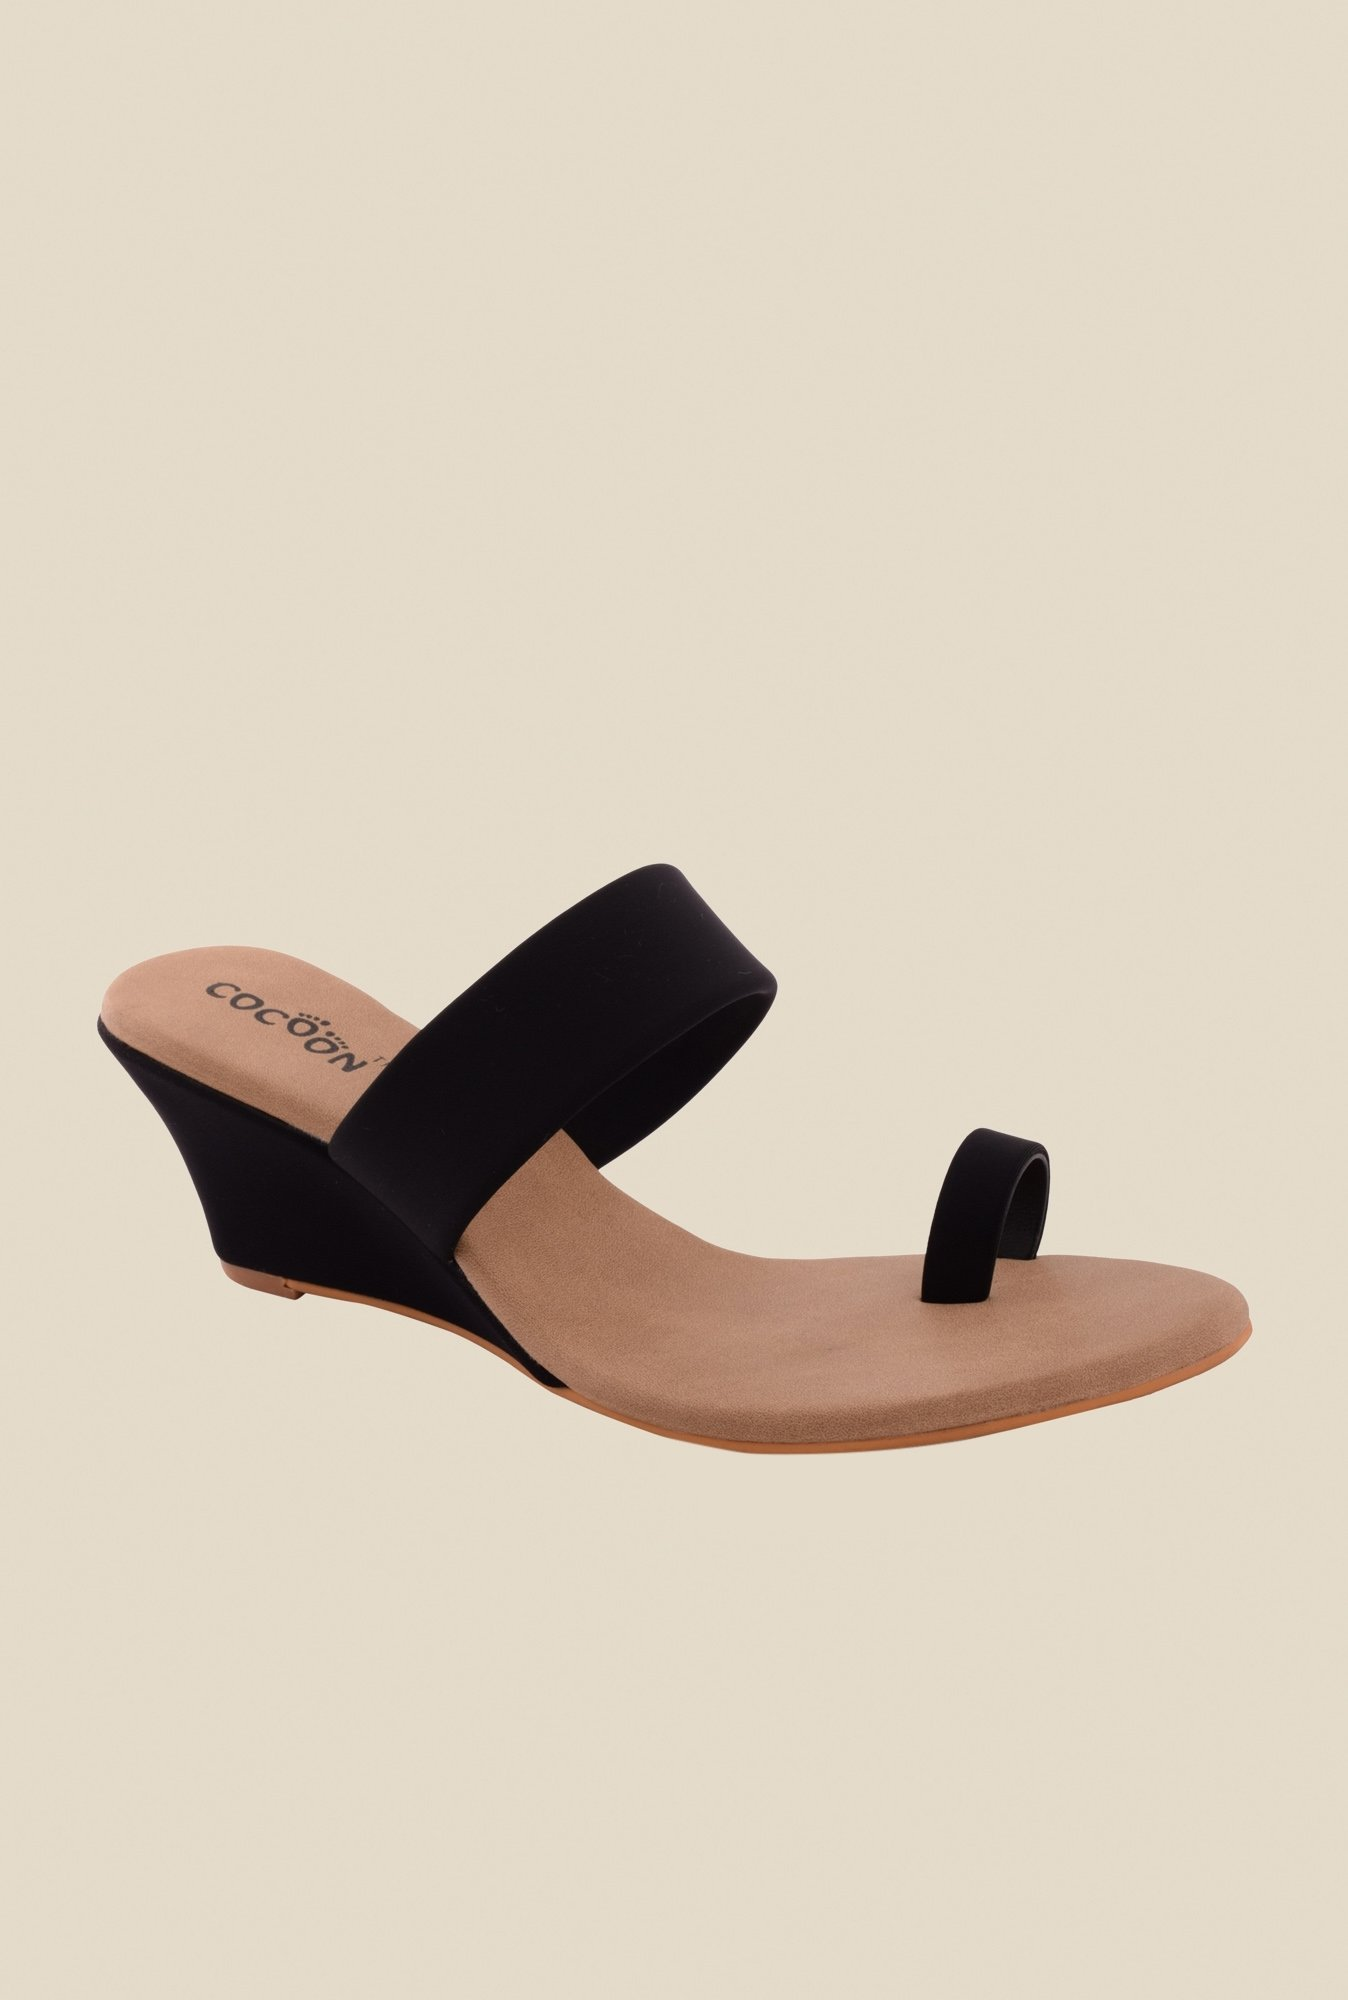 Cocoon Black Wedge Heeled Sandals